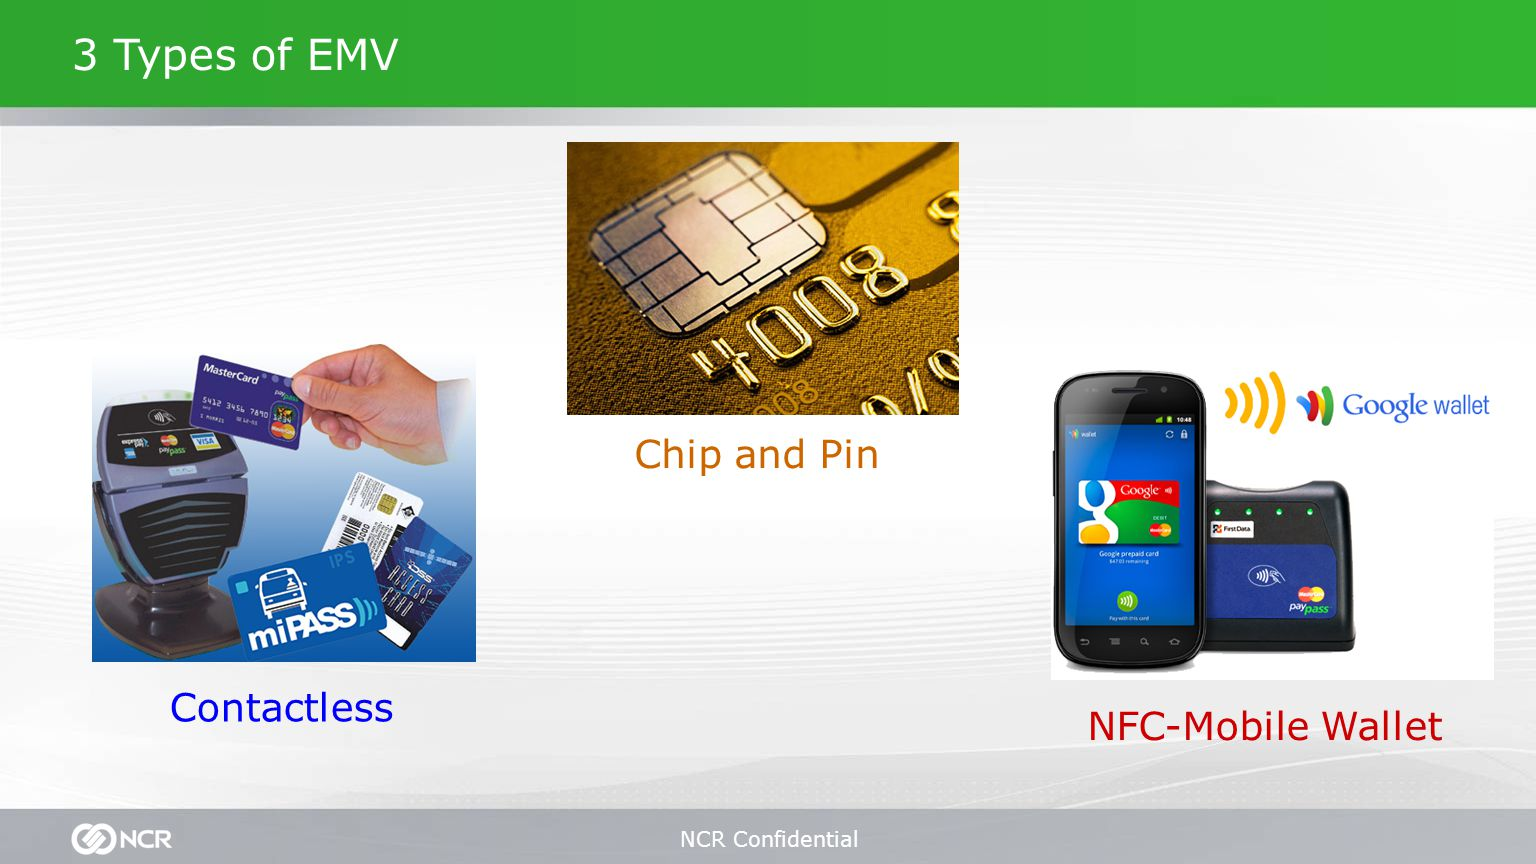 NCR Confidential 3 Types of EMV Chip and Pin NFC-Mobile Wallet Contactless Chip and Pin Contactless NFC-Mobile Wallet